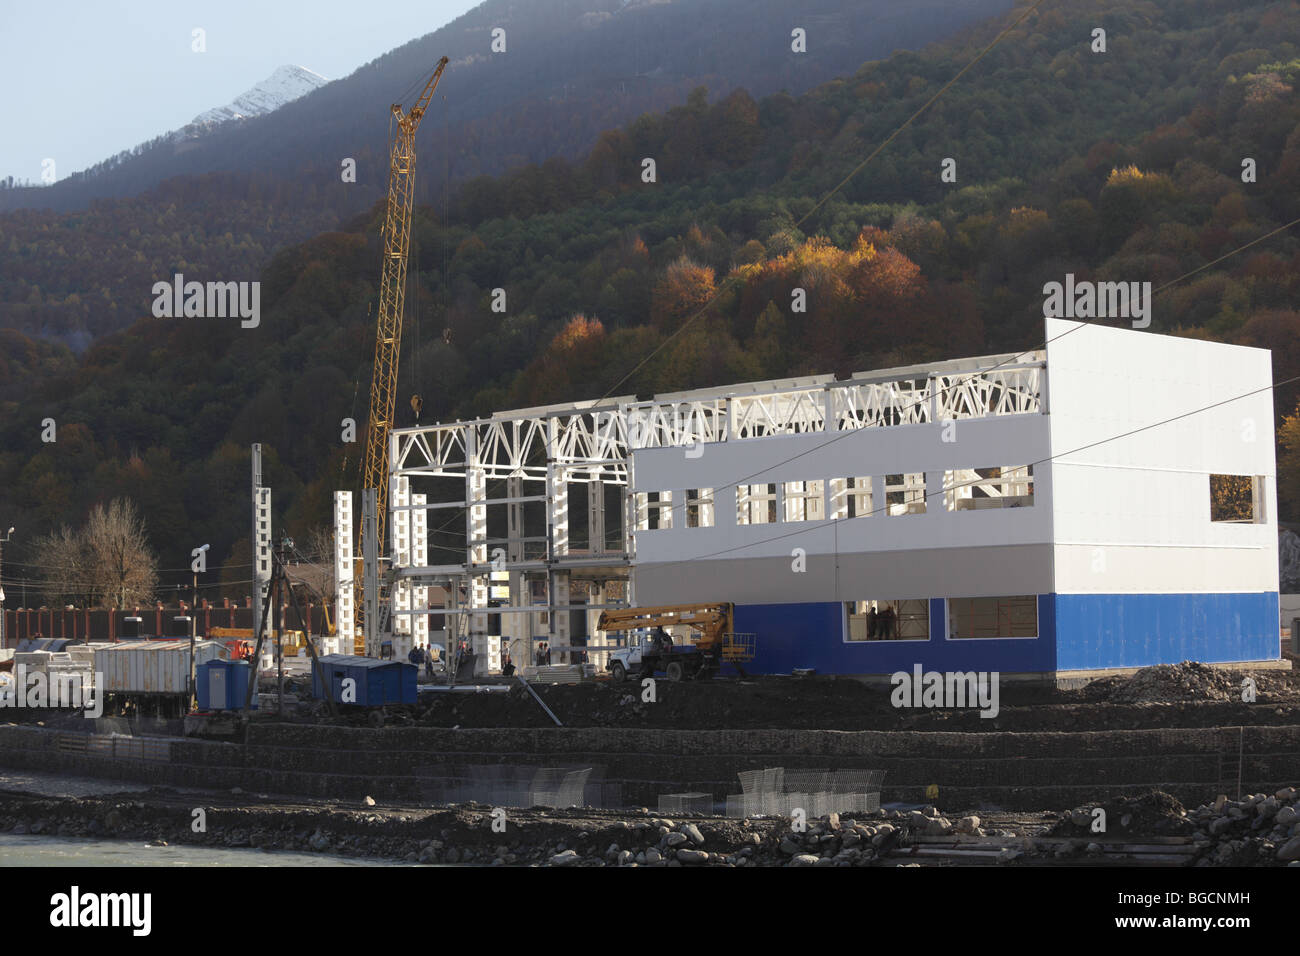 Construction of Olympic venues in Sochi, Russia - Stock Image